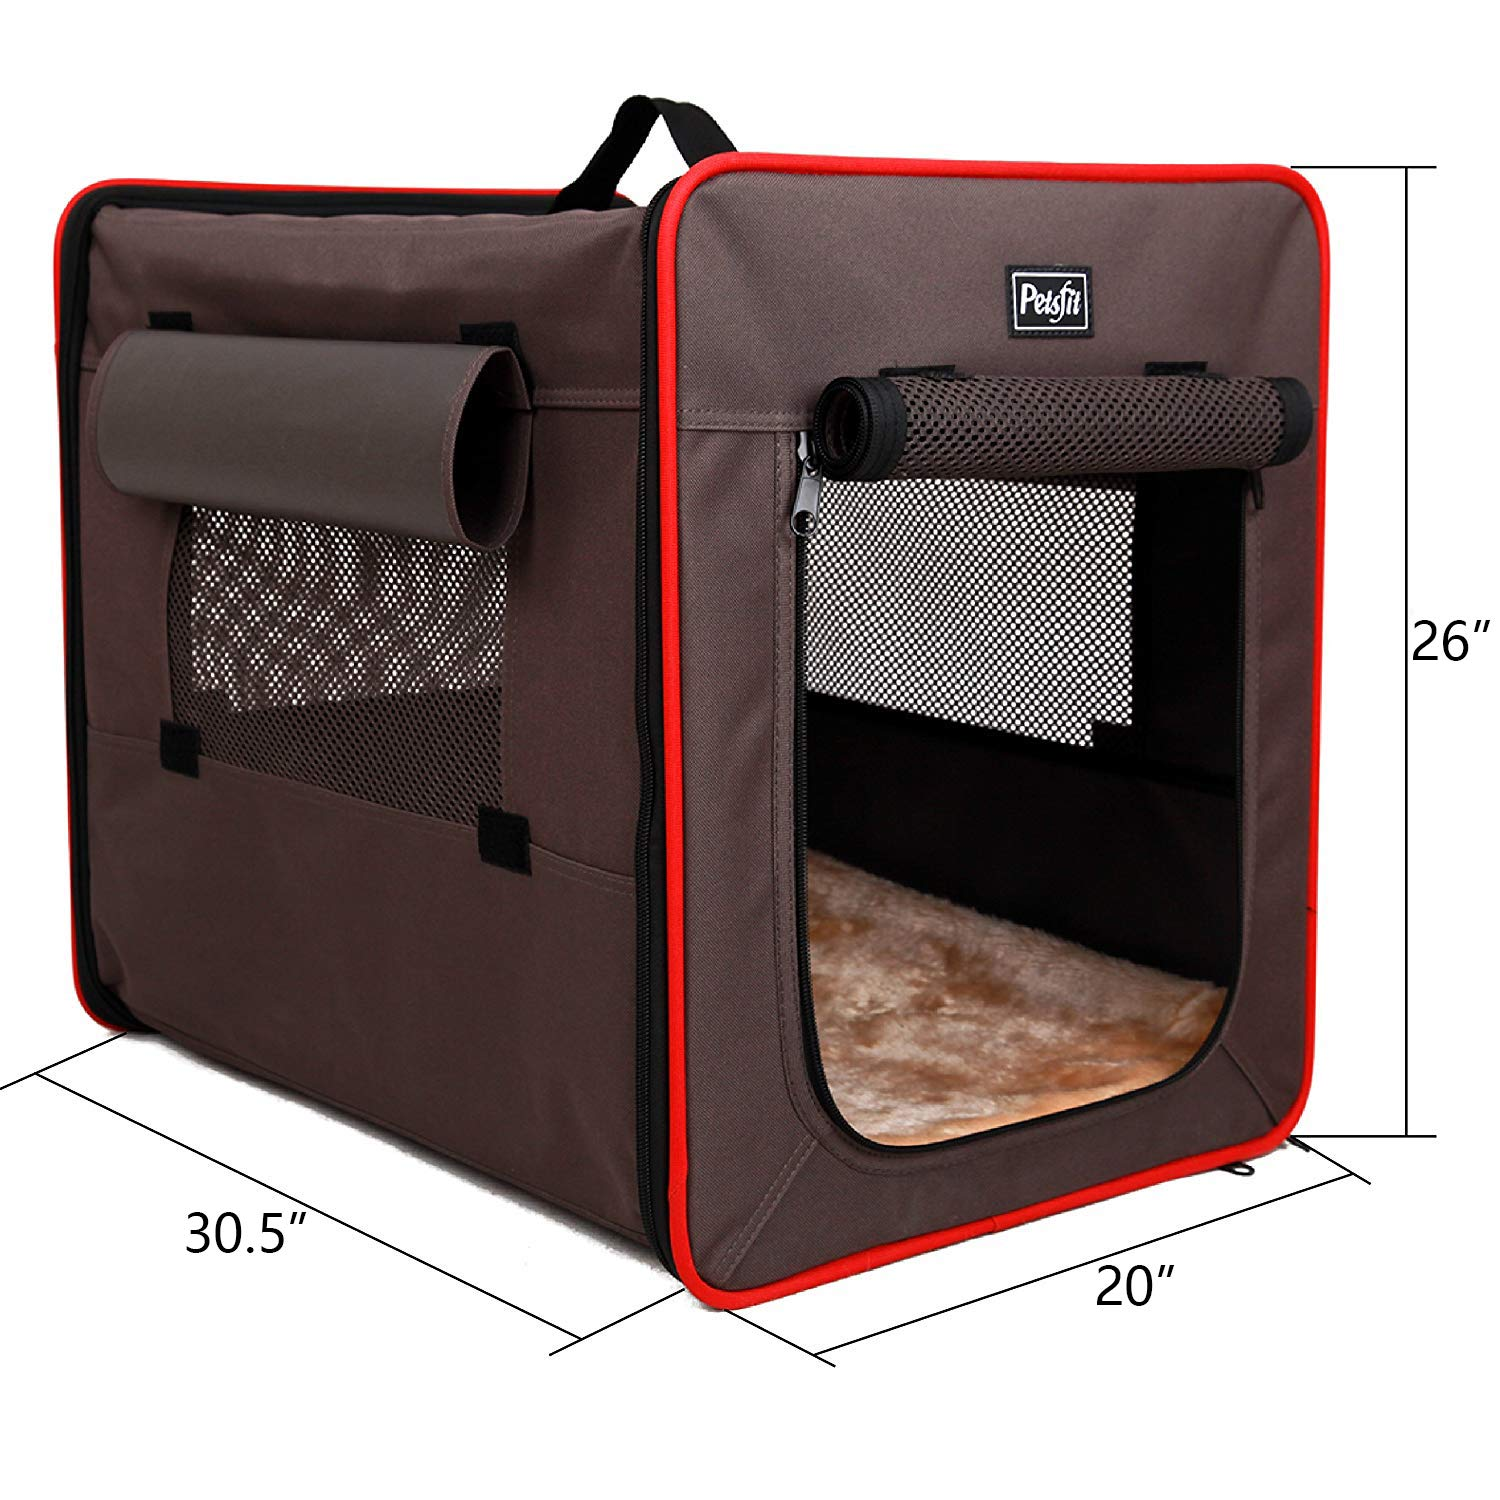 Petsfit Solid Frame Soft Crate for Indoor and Outdoor Use, Collapsible